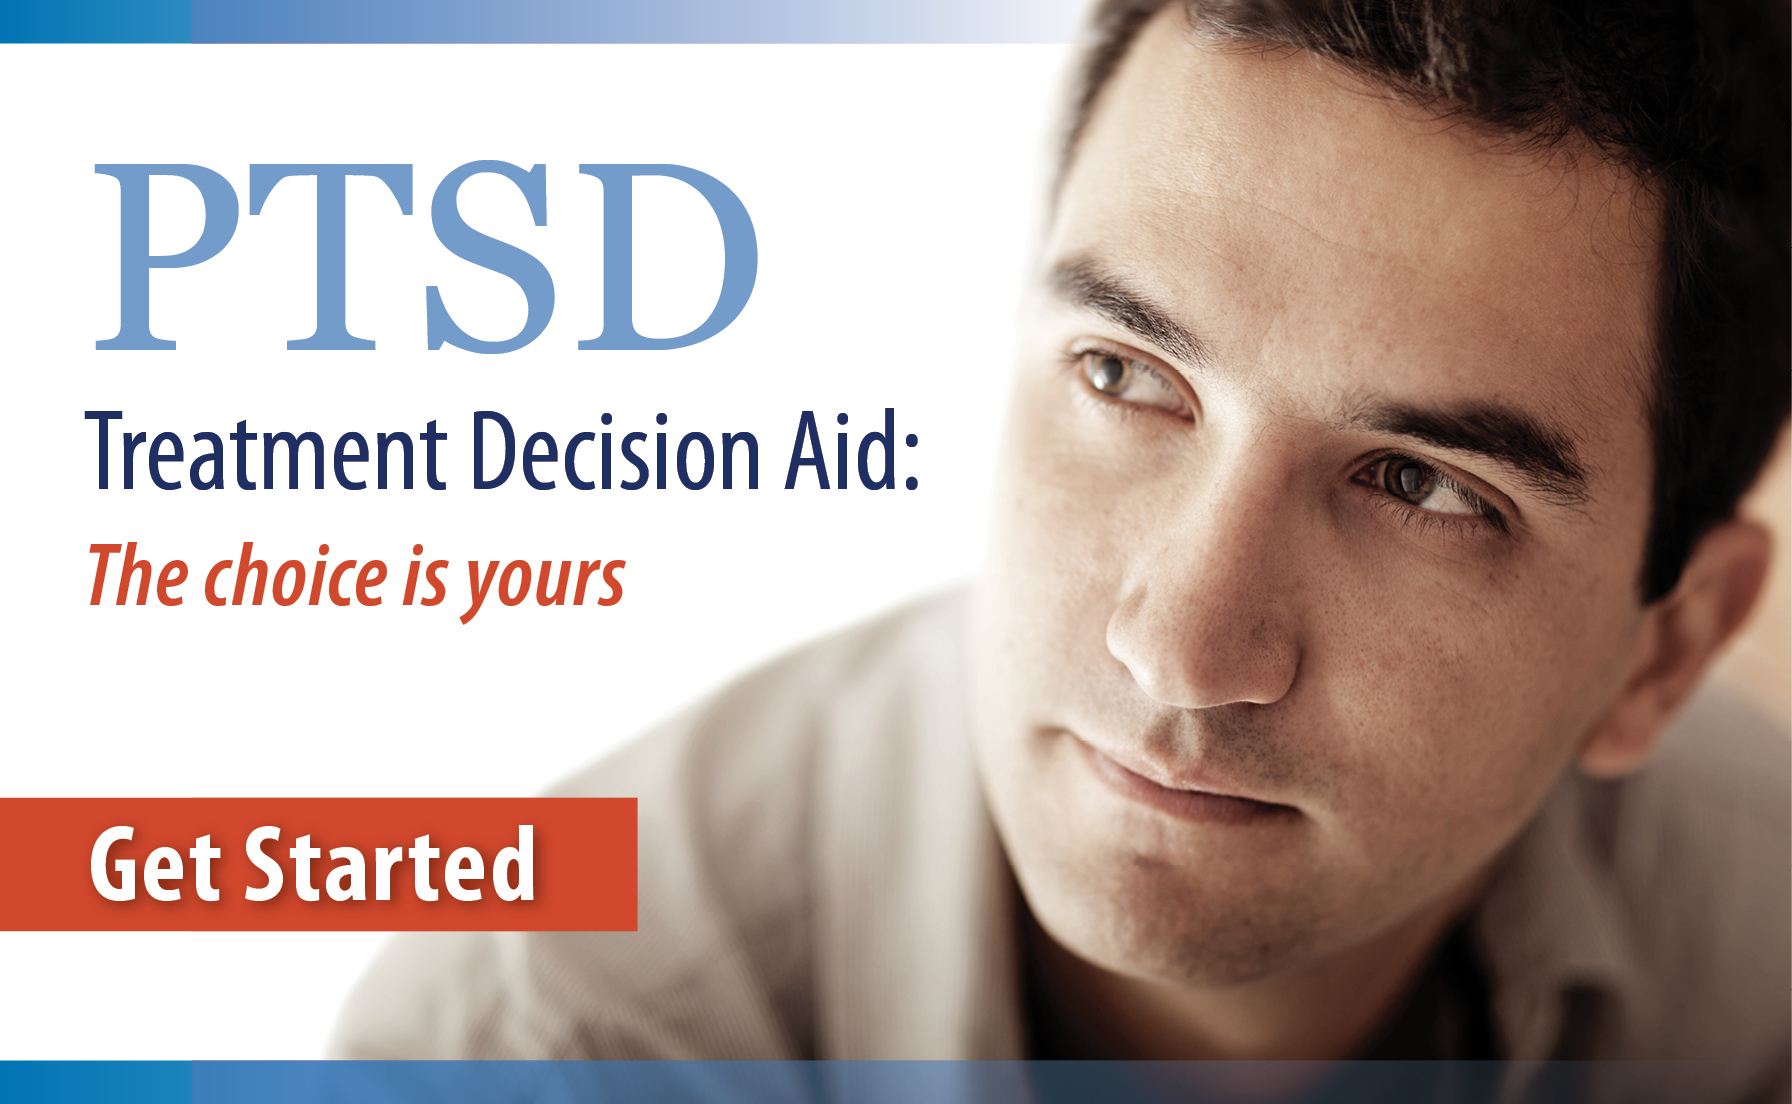 PTSD Treatment Decision Aid: The choice is yours. Get Started.